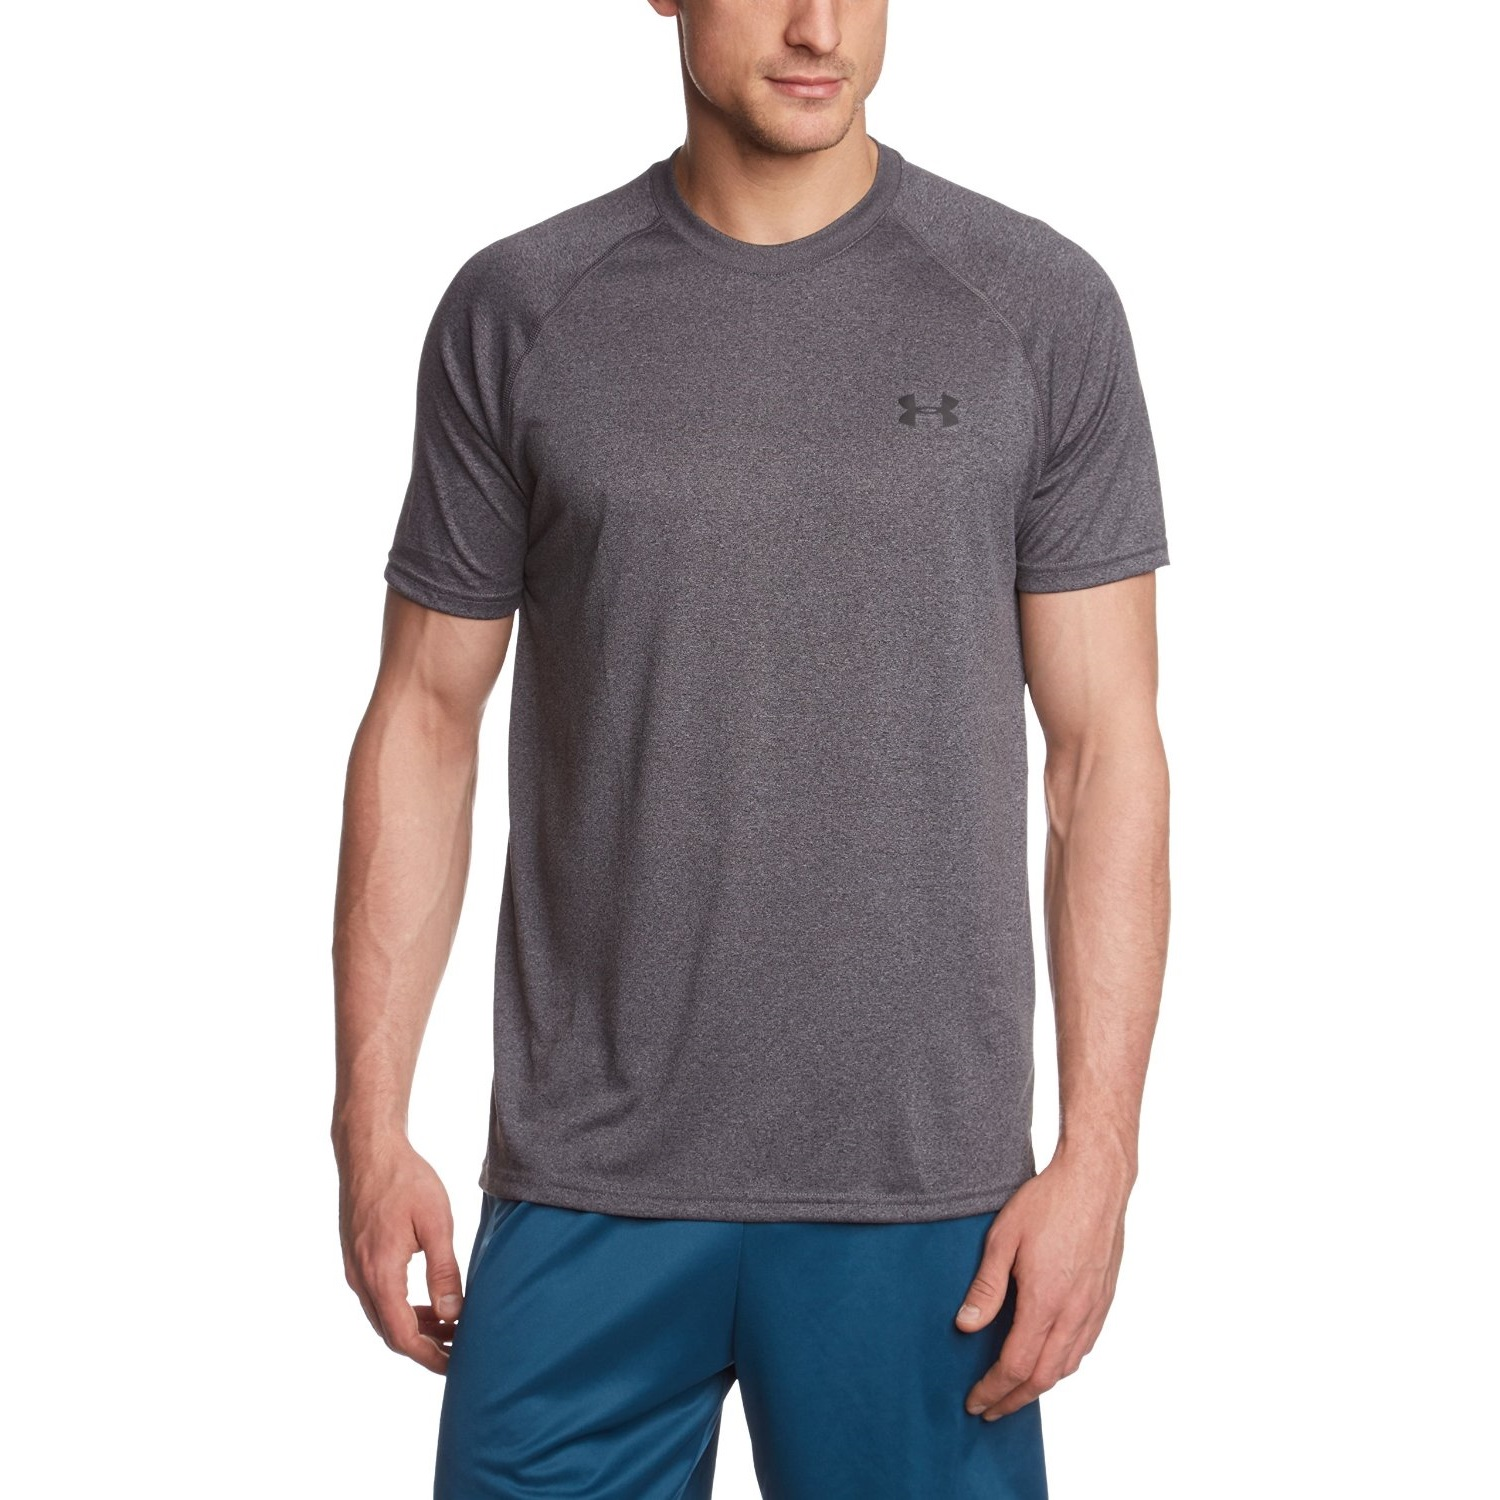 Under armour men s tech short sleeve yoga t shirt for Shop mens t shirts